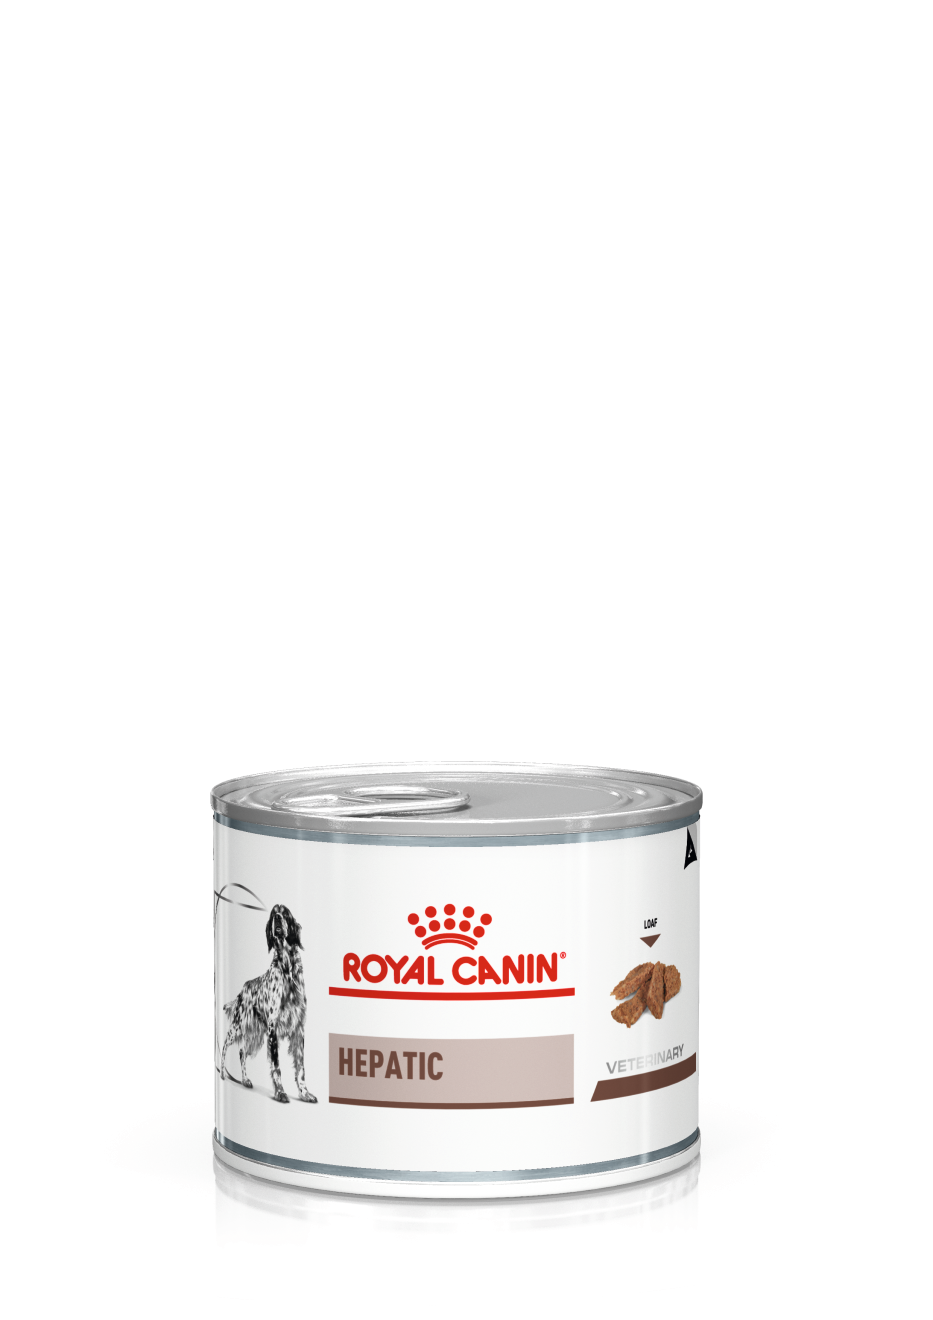 Royal Canin Hepatic Mousse